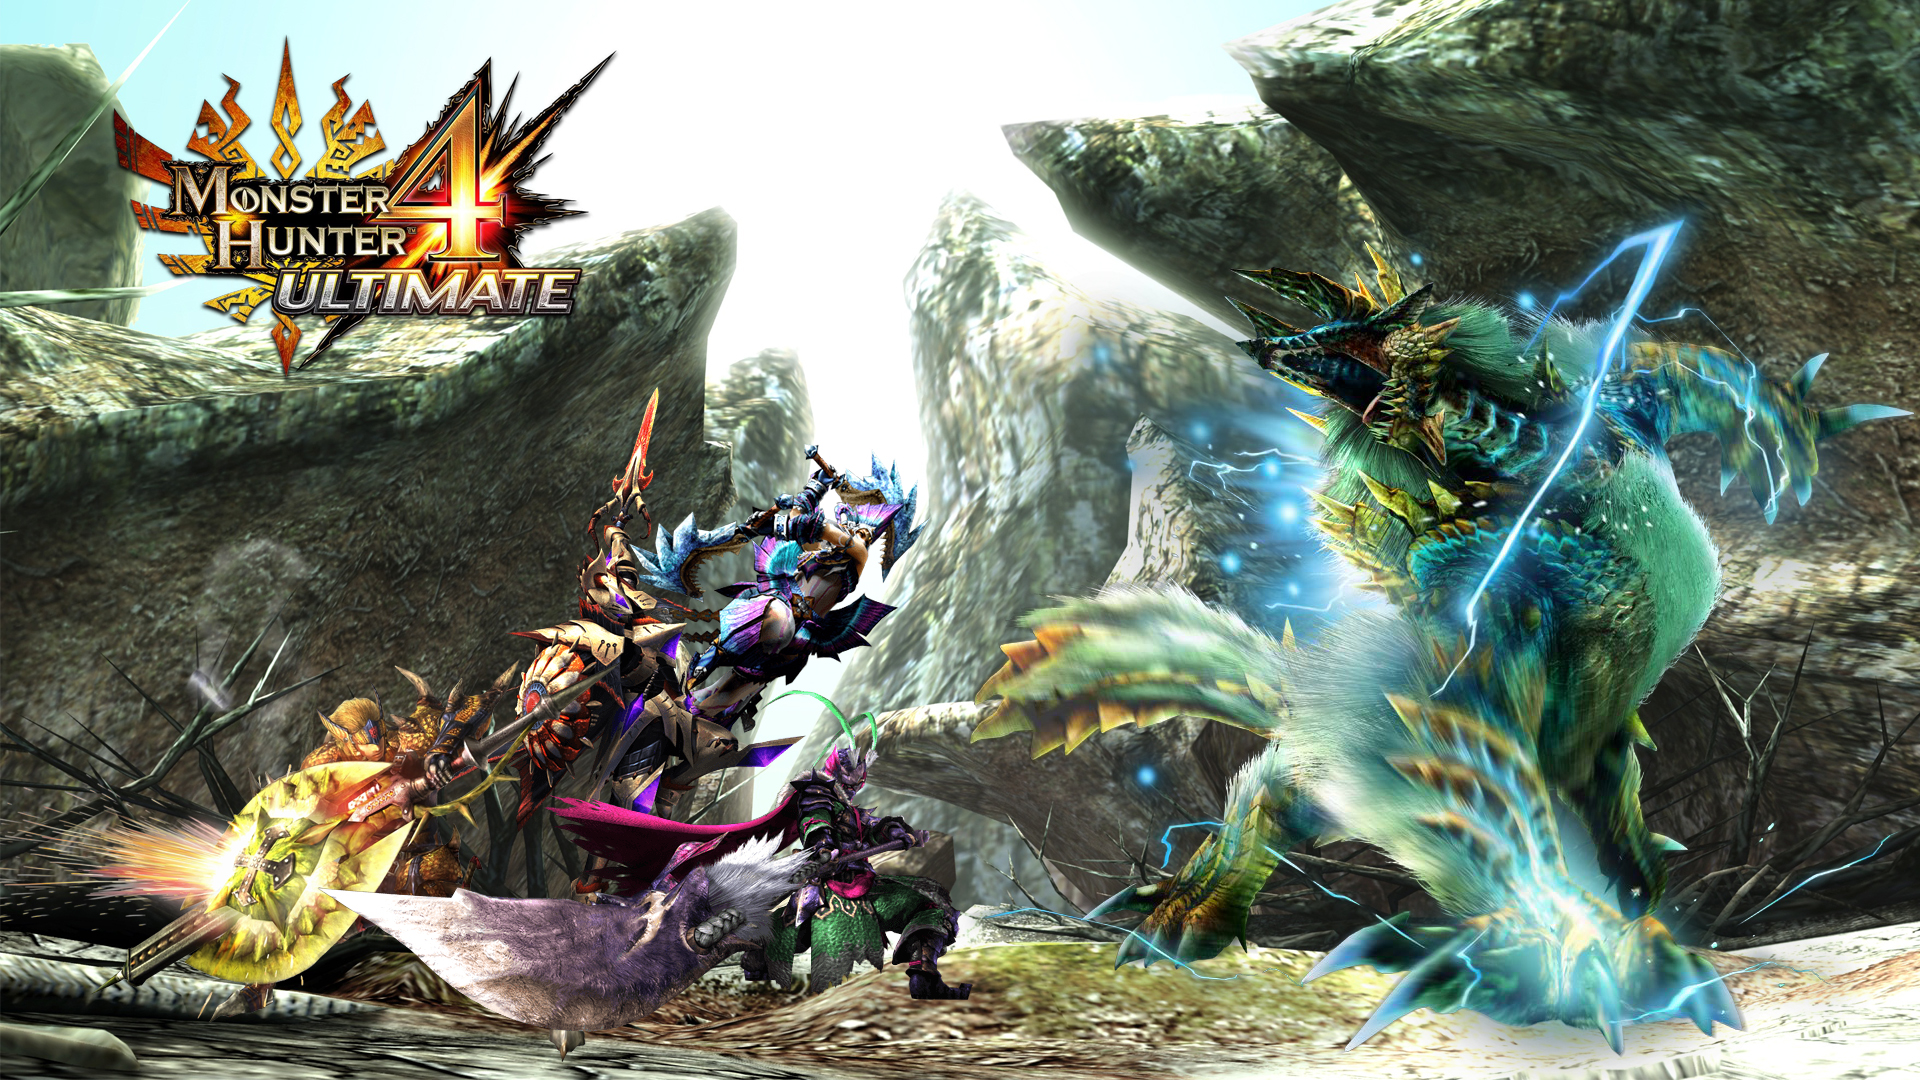 Monster hunter 4 Ultimate: the ultimate game